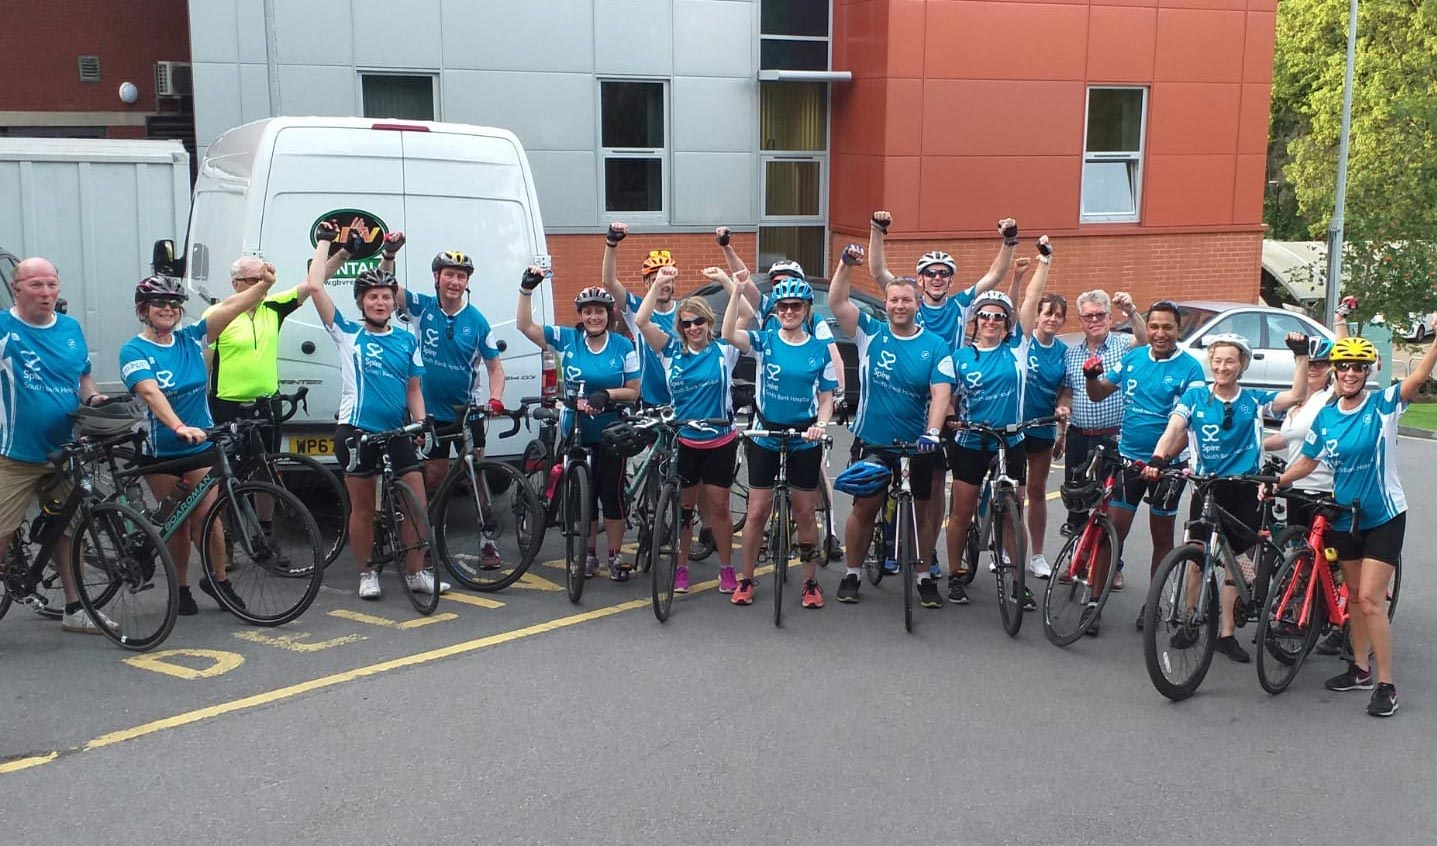 Spire South Bank Hospital cycle over 1,400 miles for charity